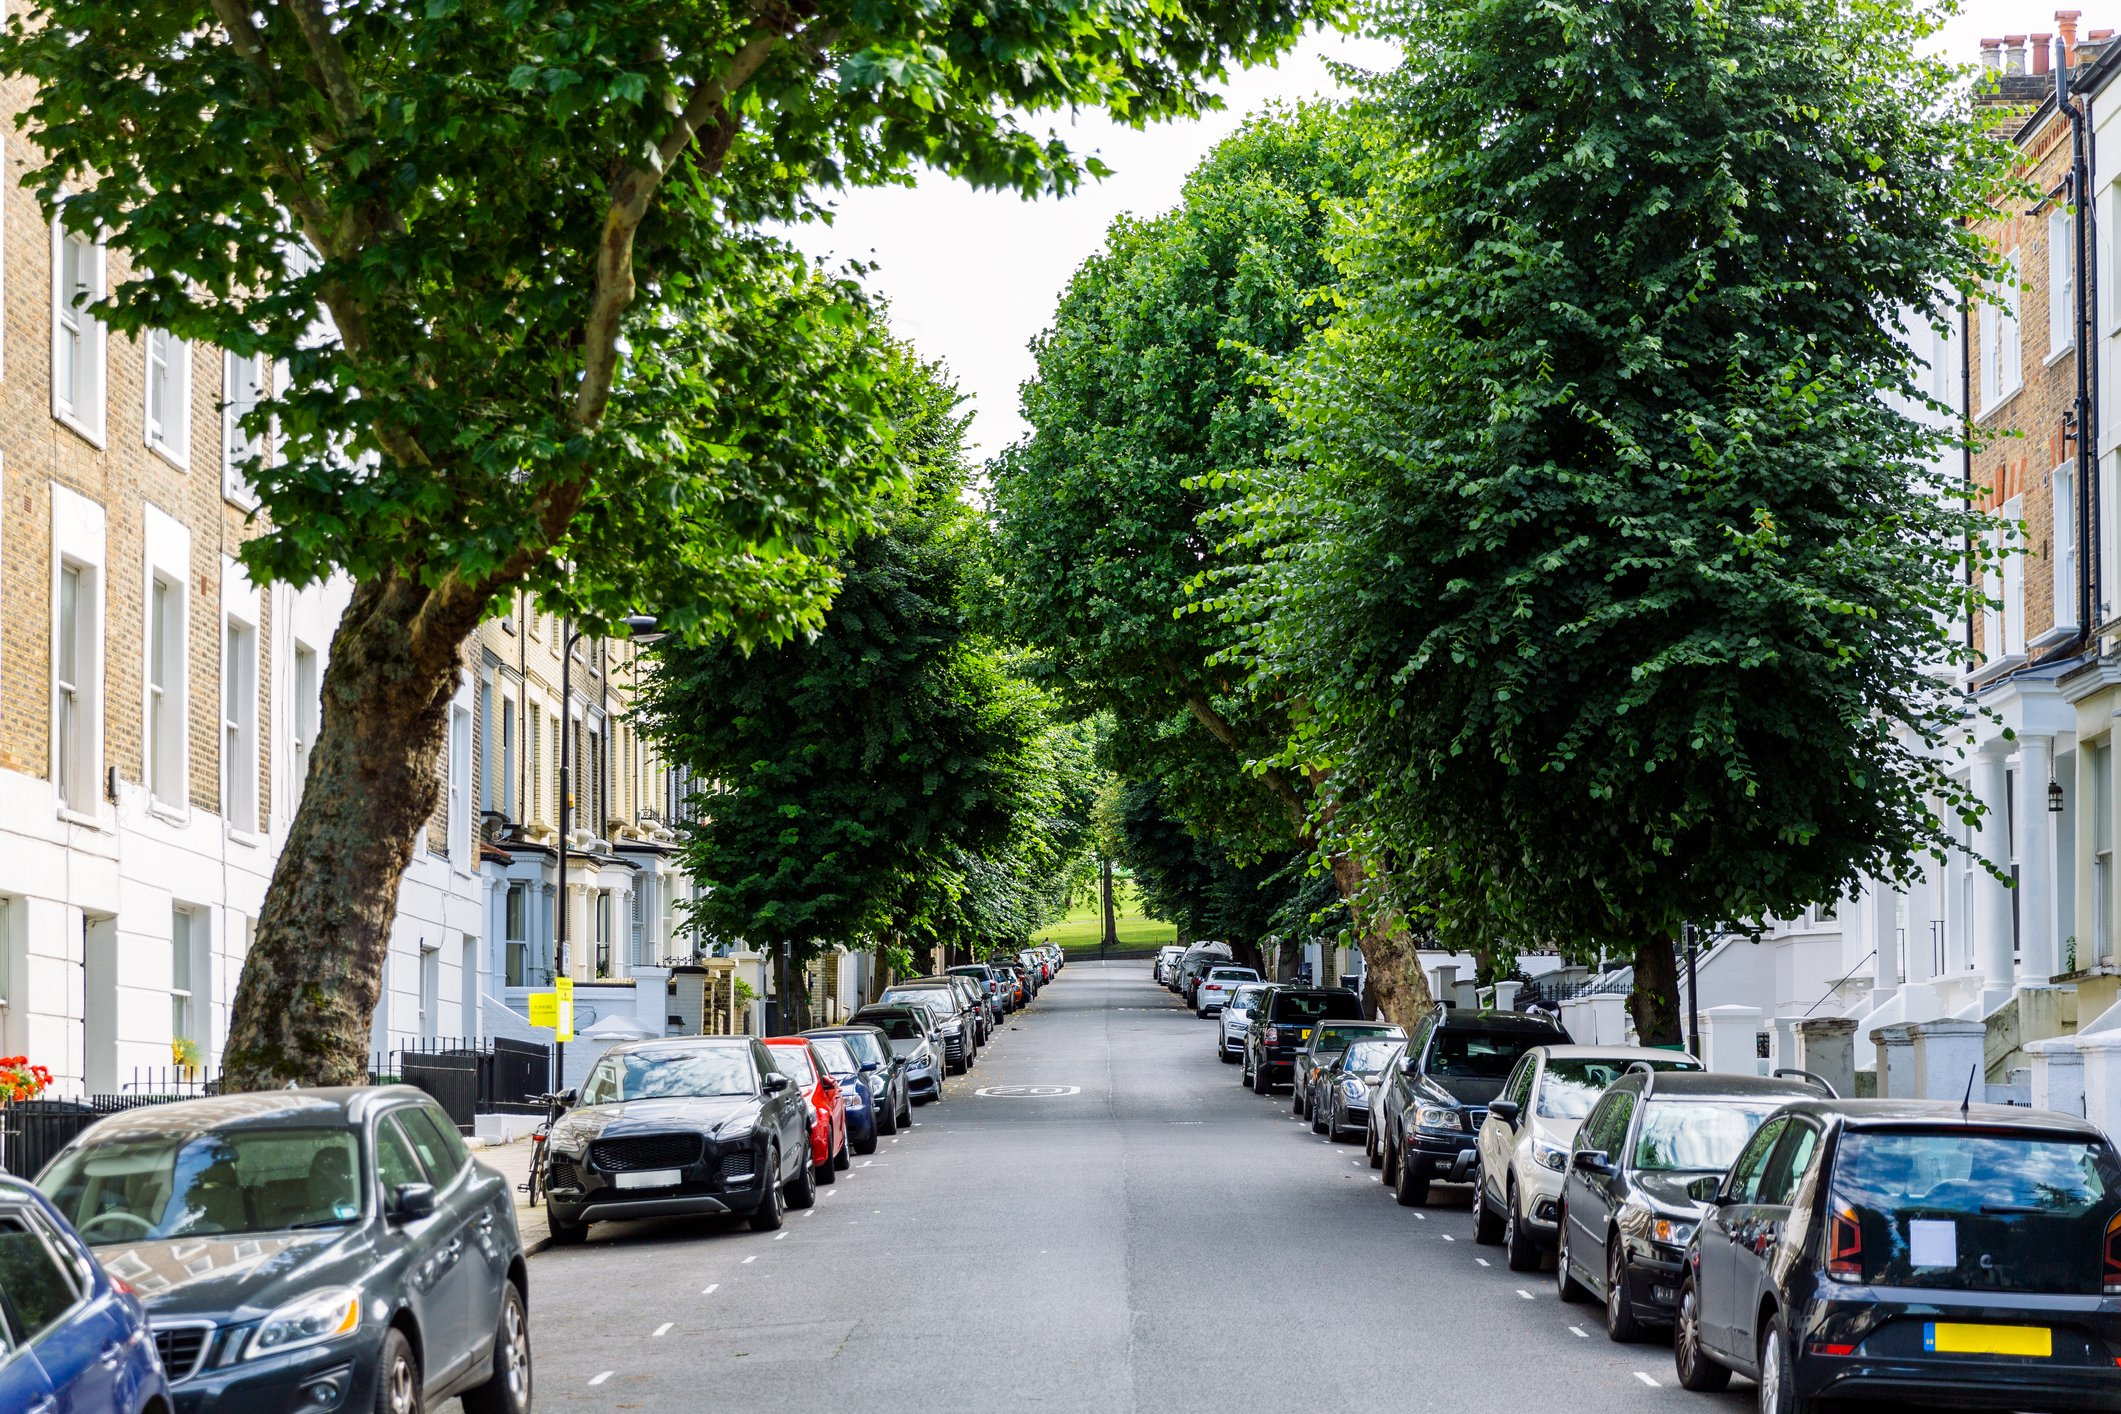 A picture of a street with trees and parked cars. | Photo: Getty Images